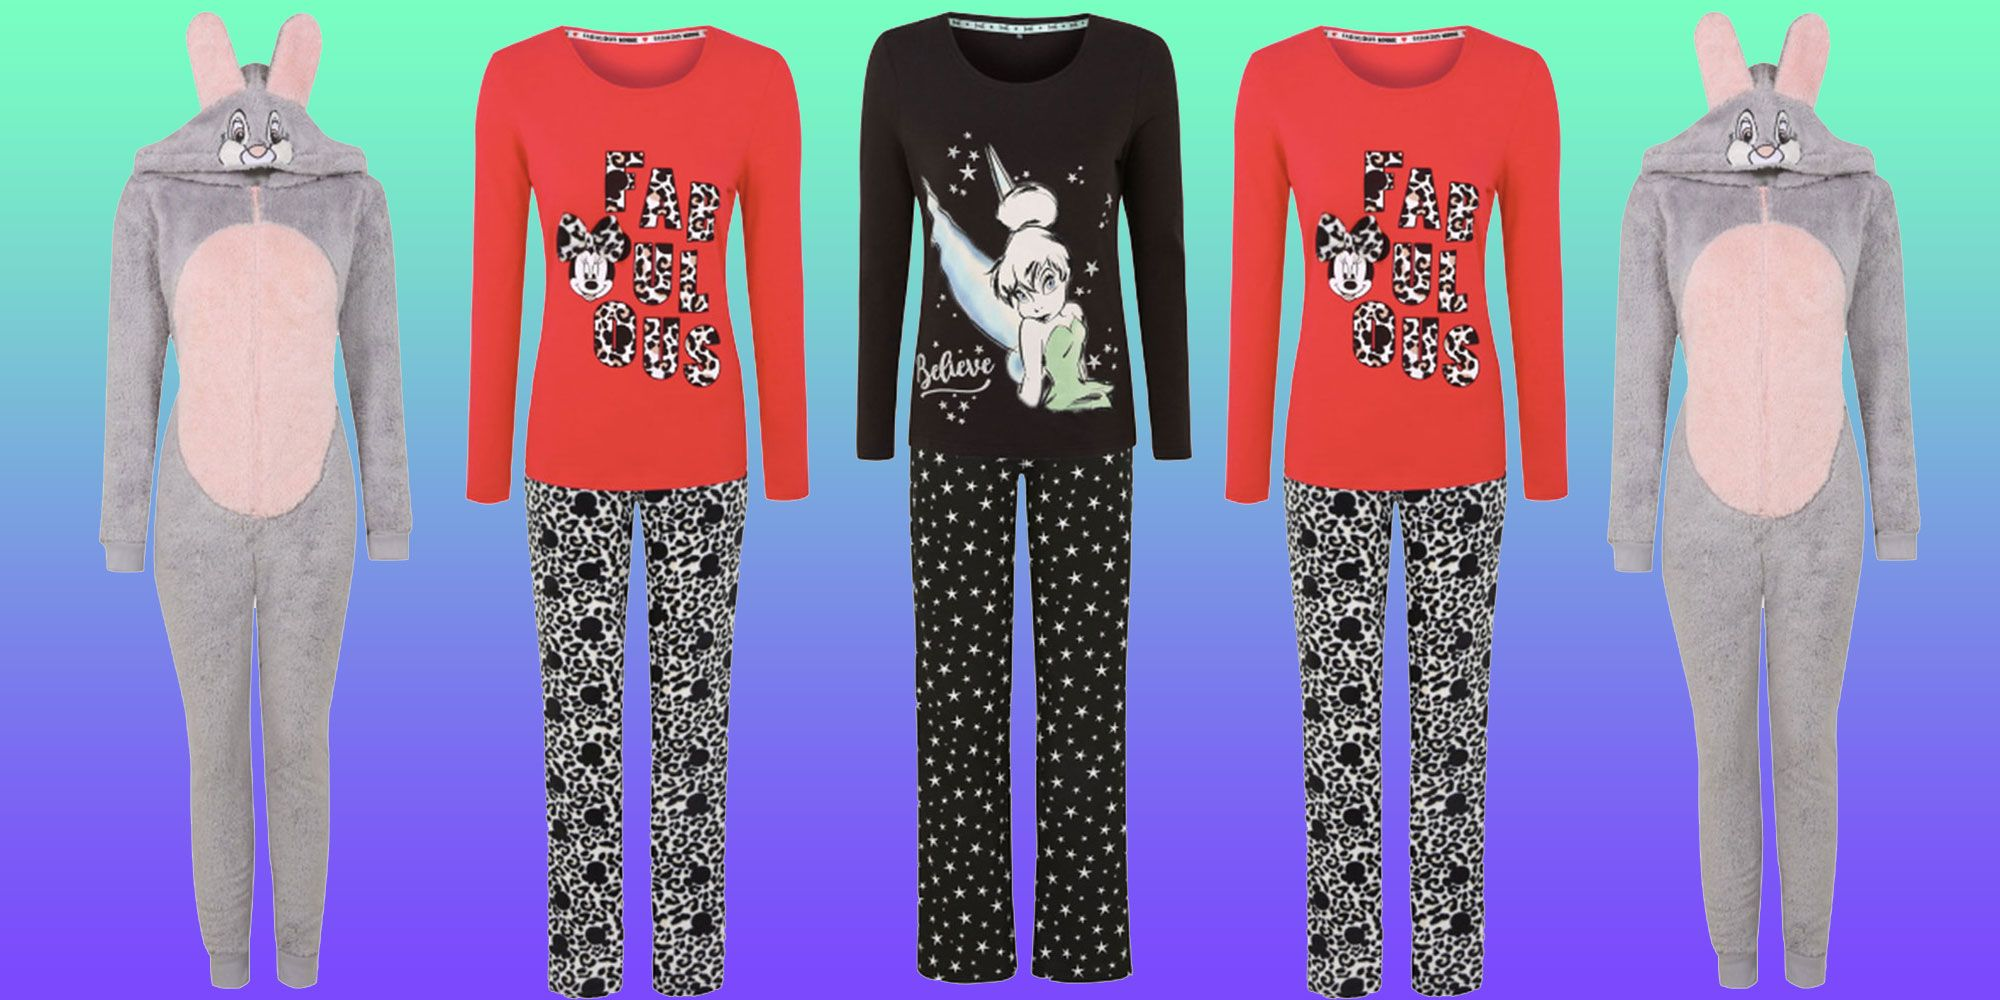 Asda Disney pyjamas